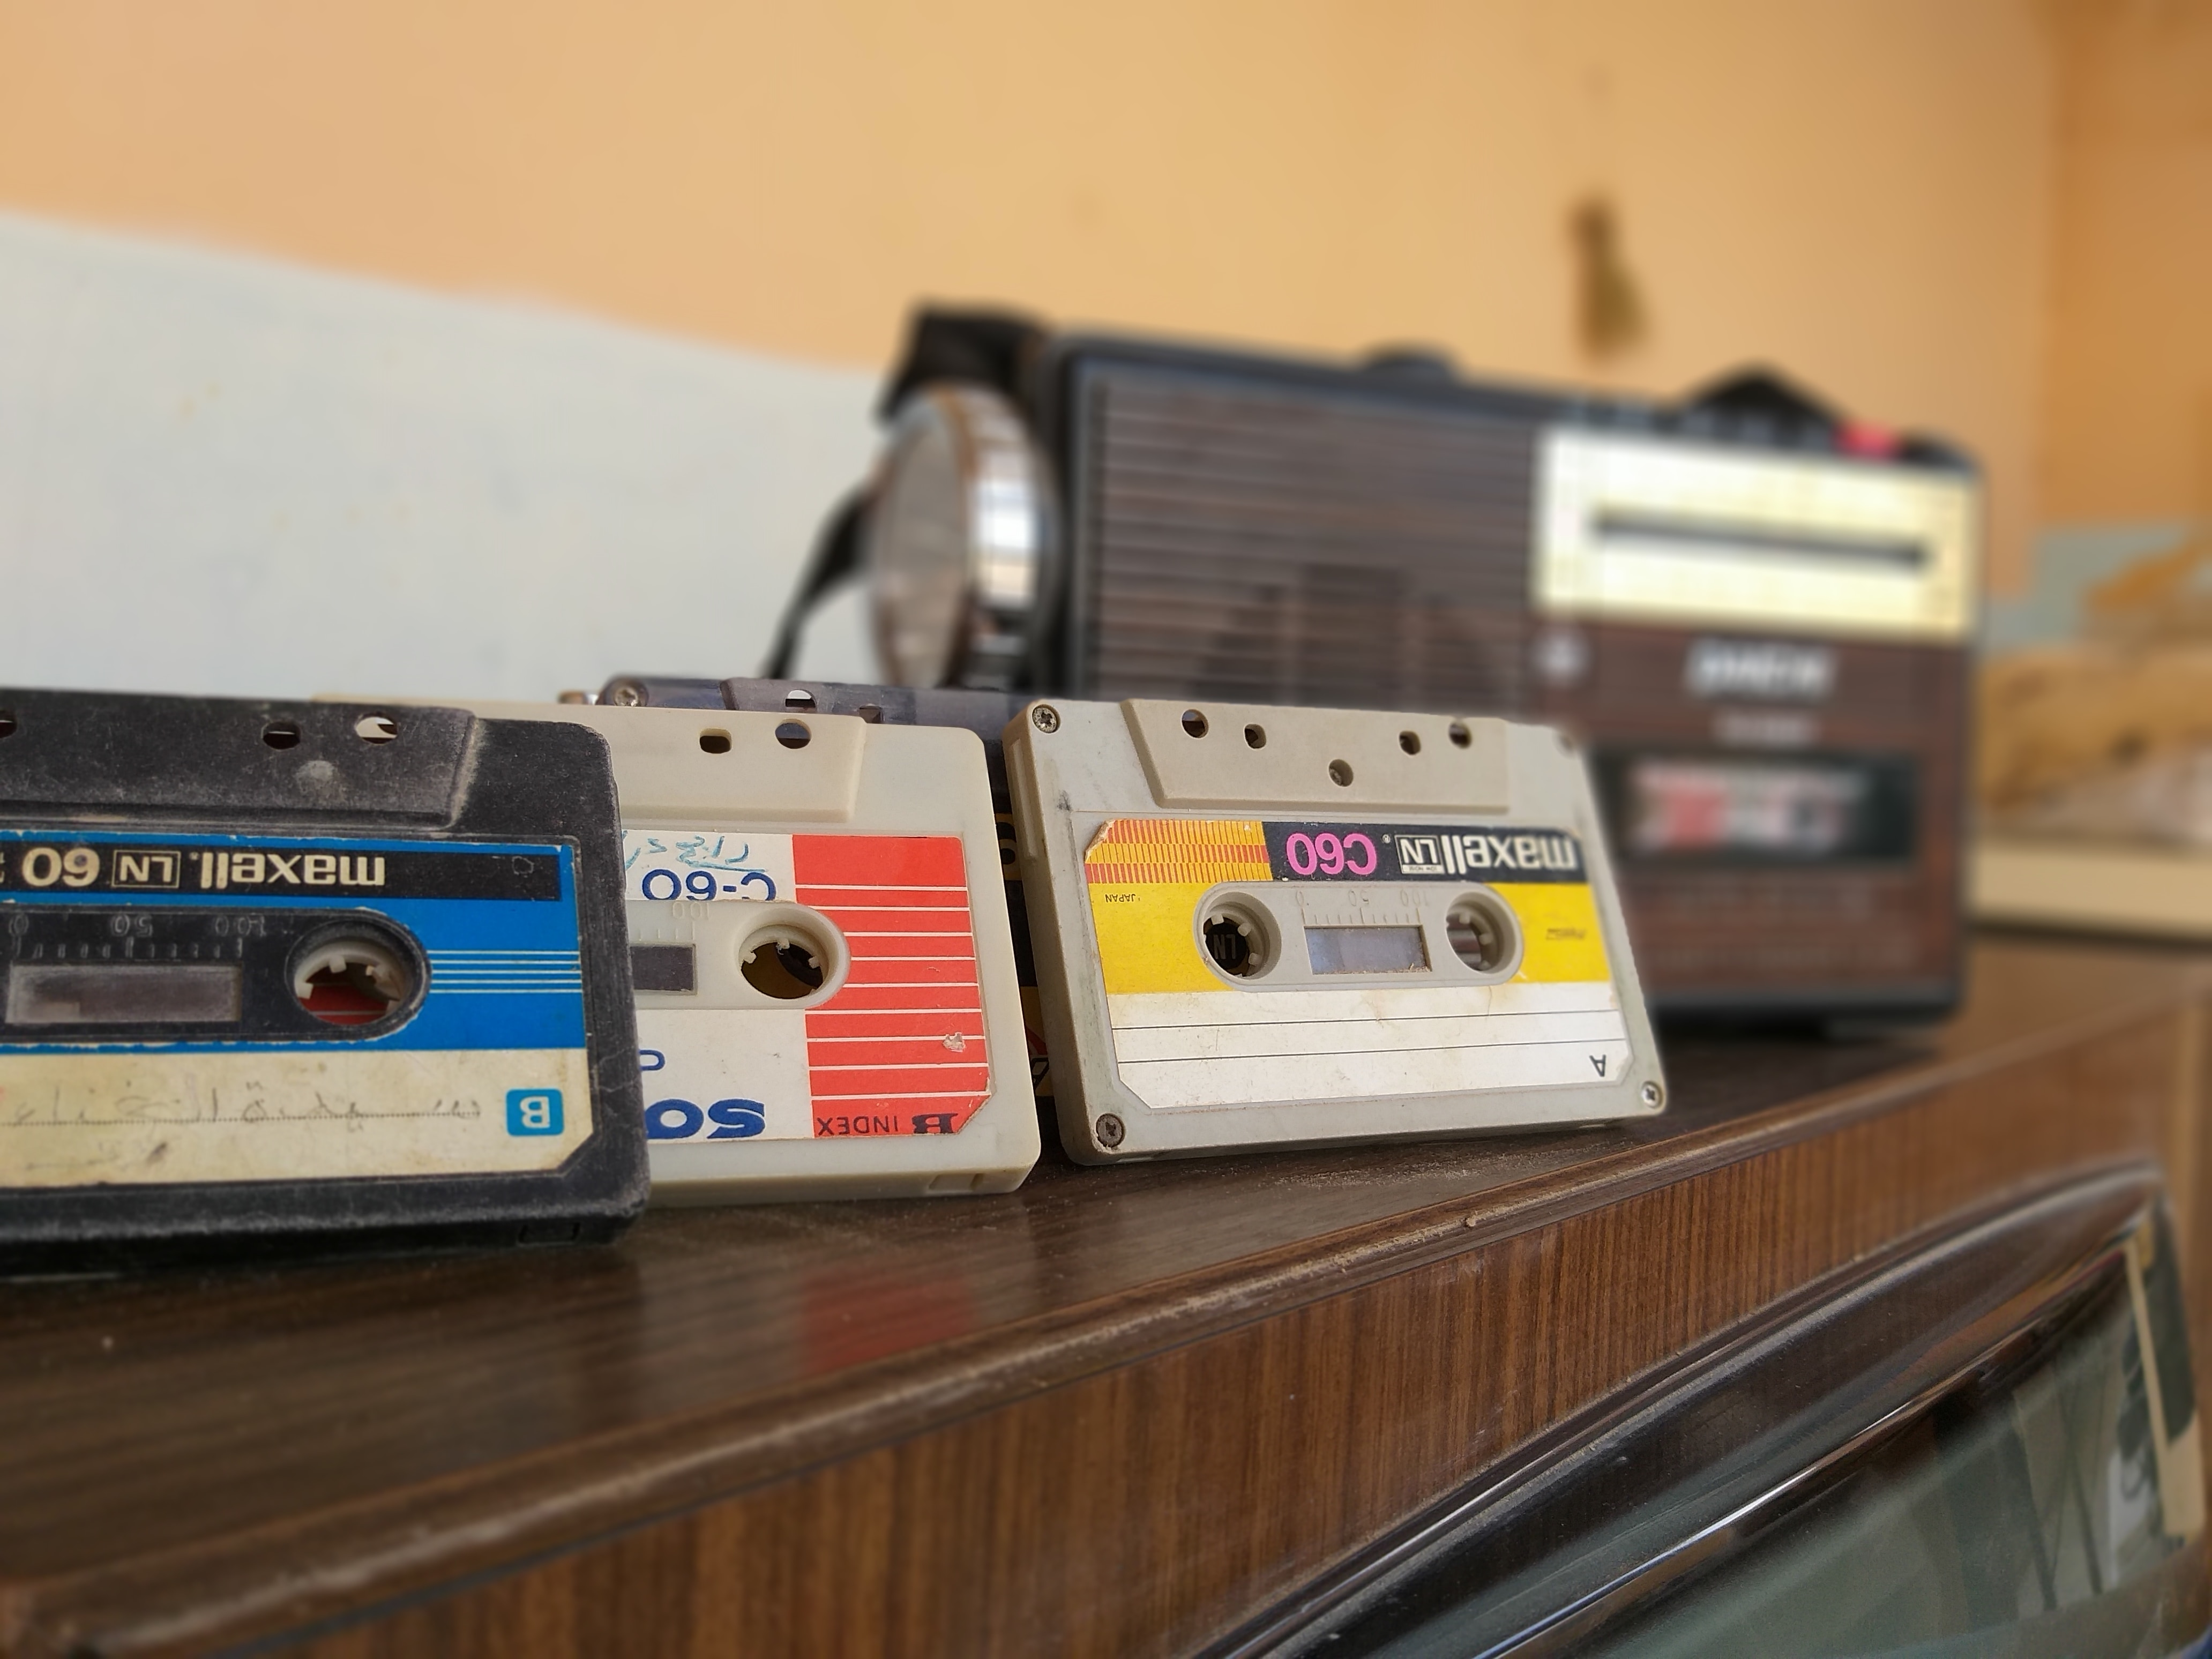 cassette tapes on a wooden tv stand